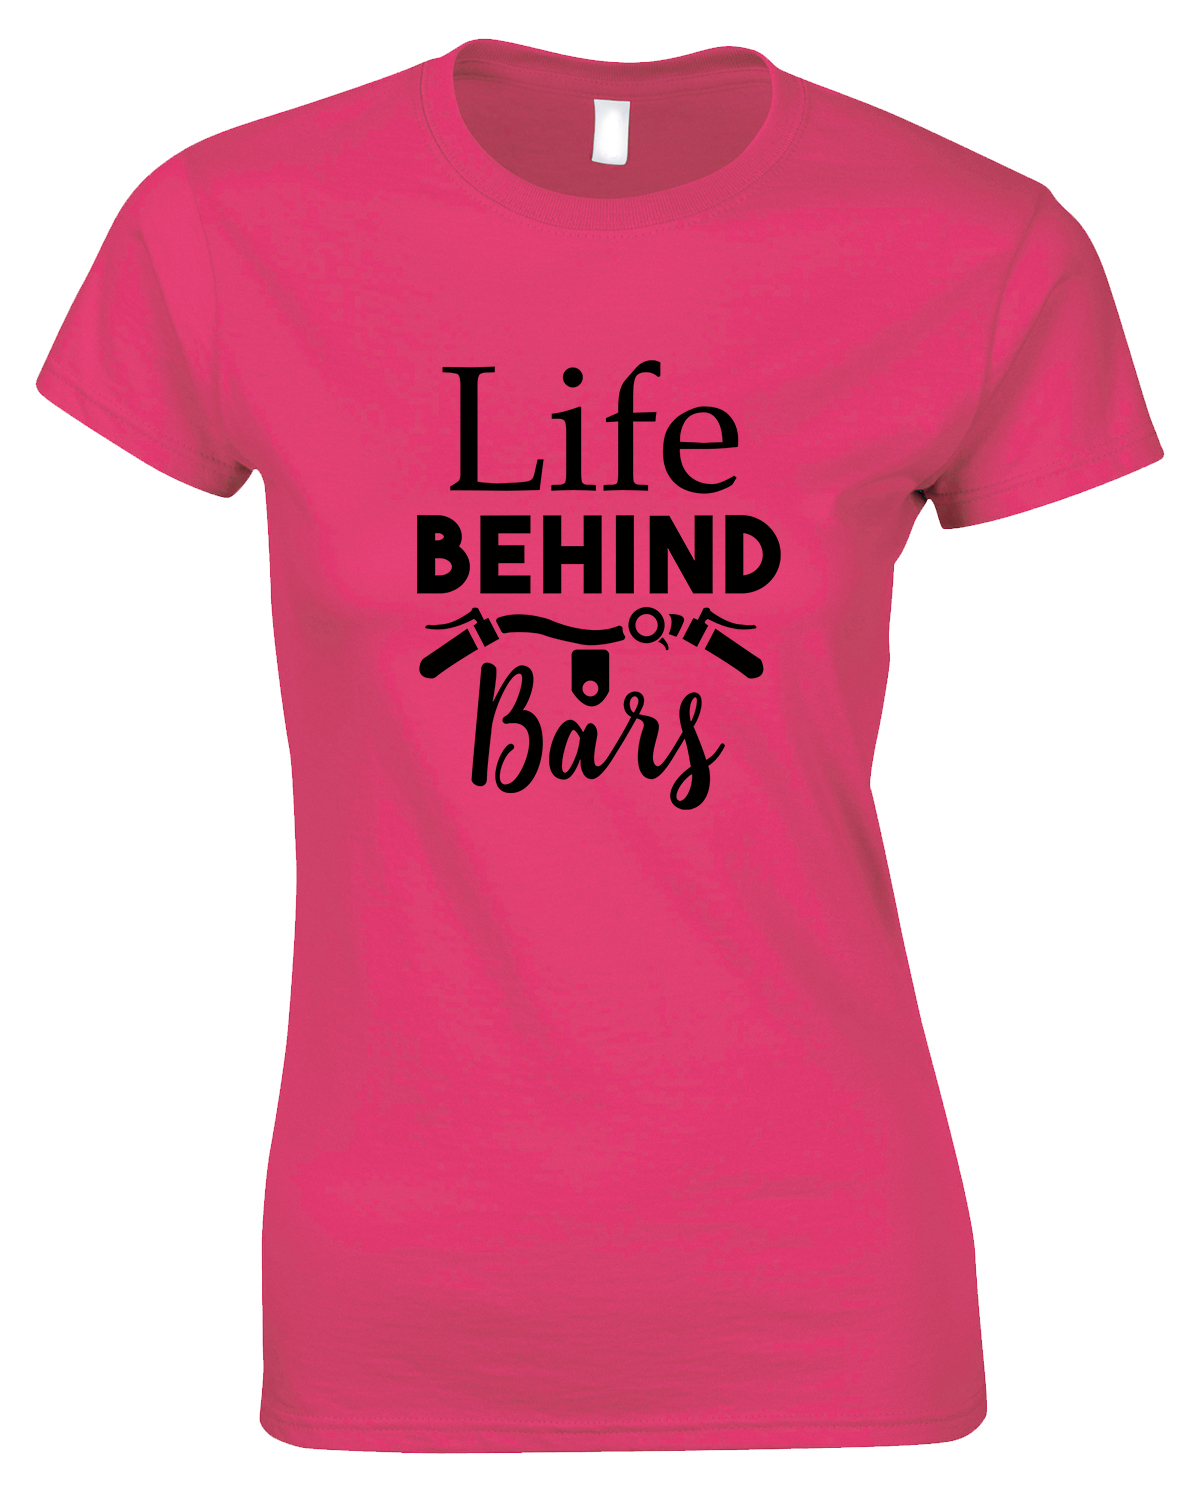 Life Behind Bars - Ladies Cycling T Shirt